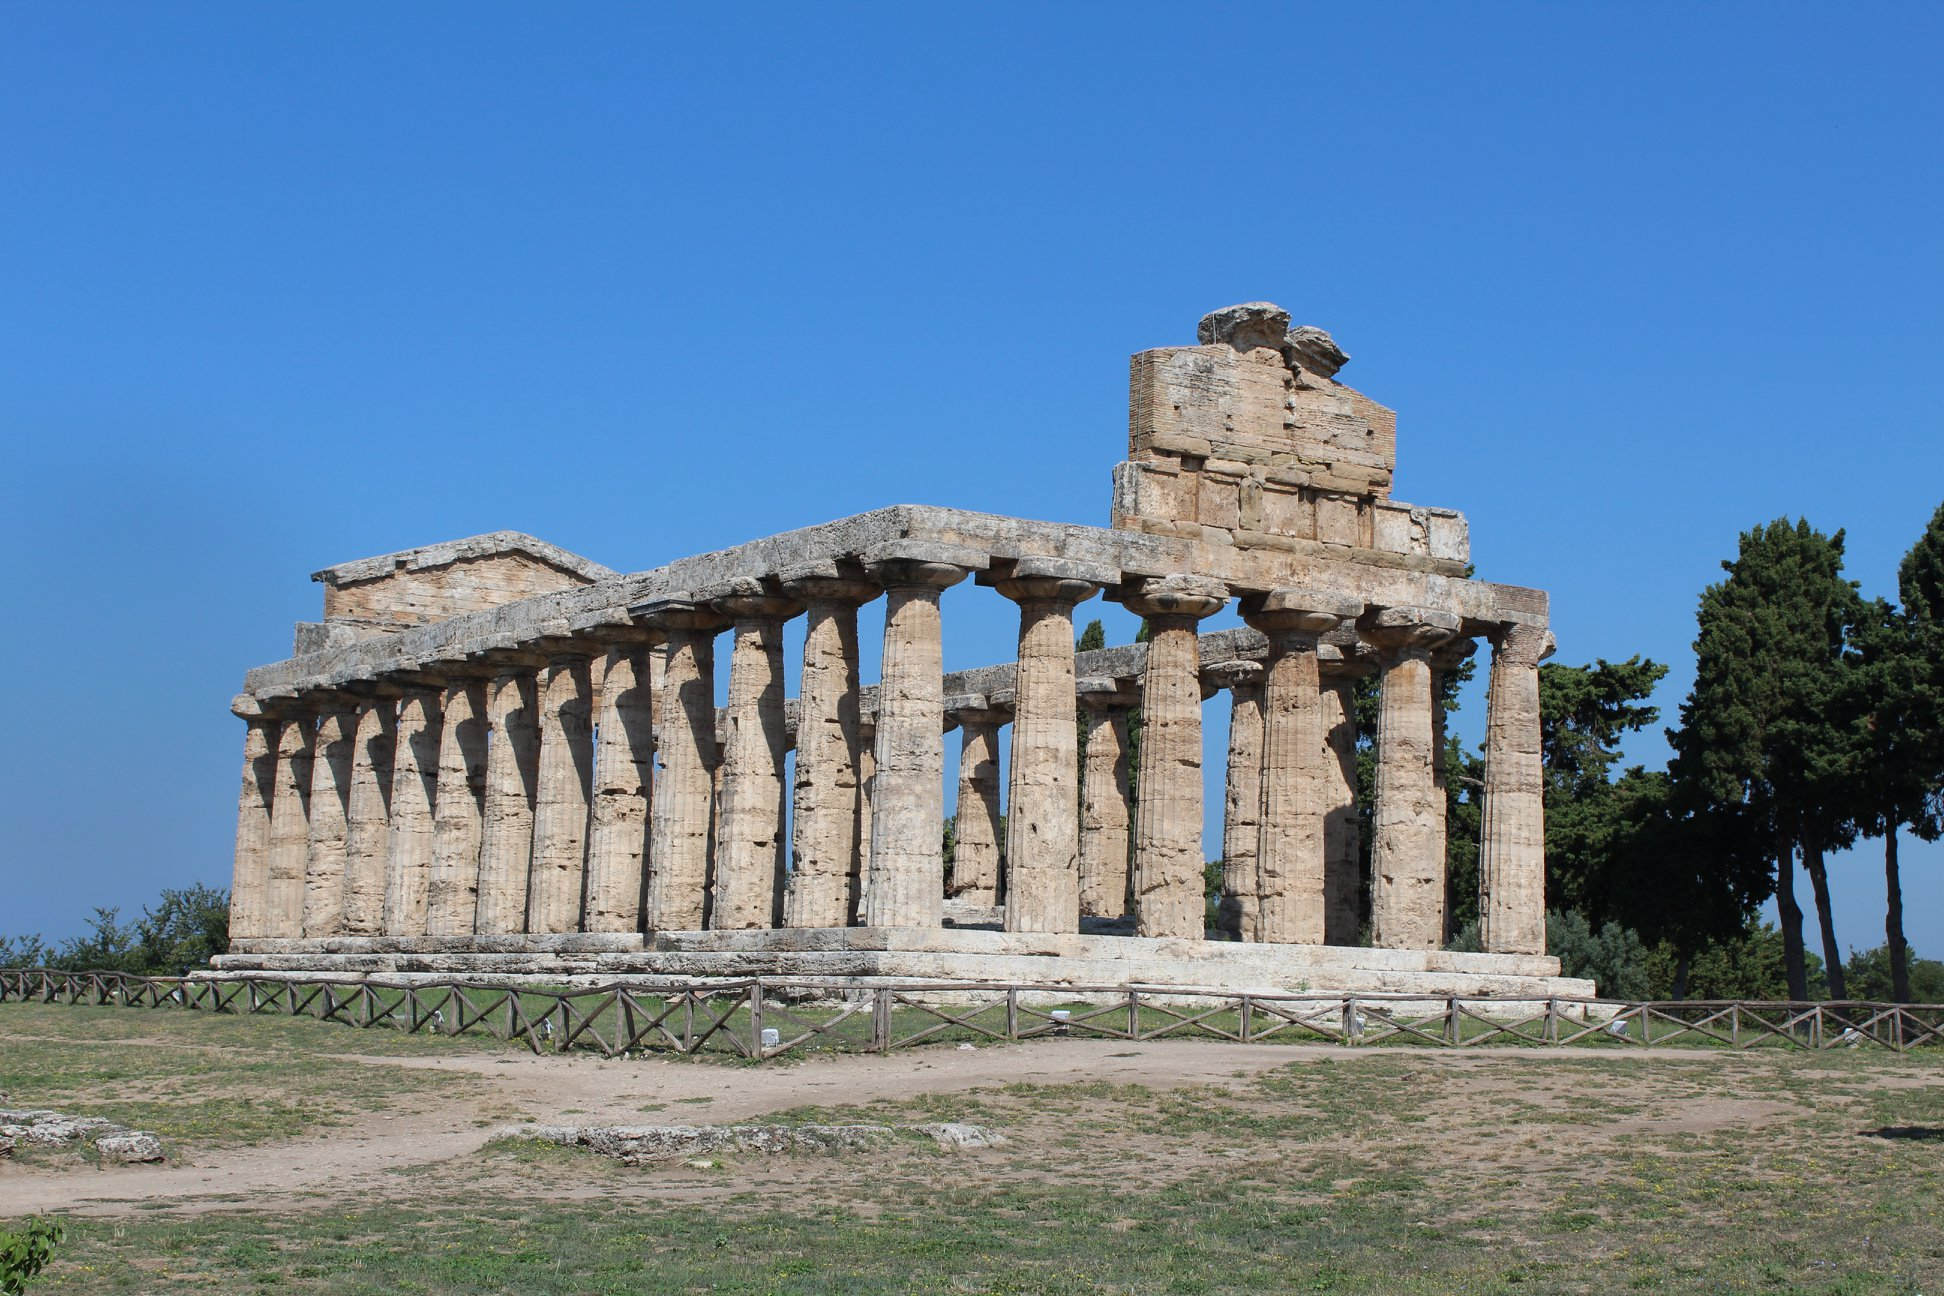 Temple of Athena in Paestum (SA)